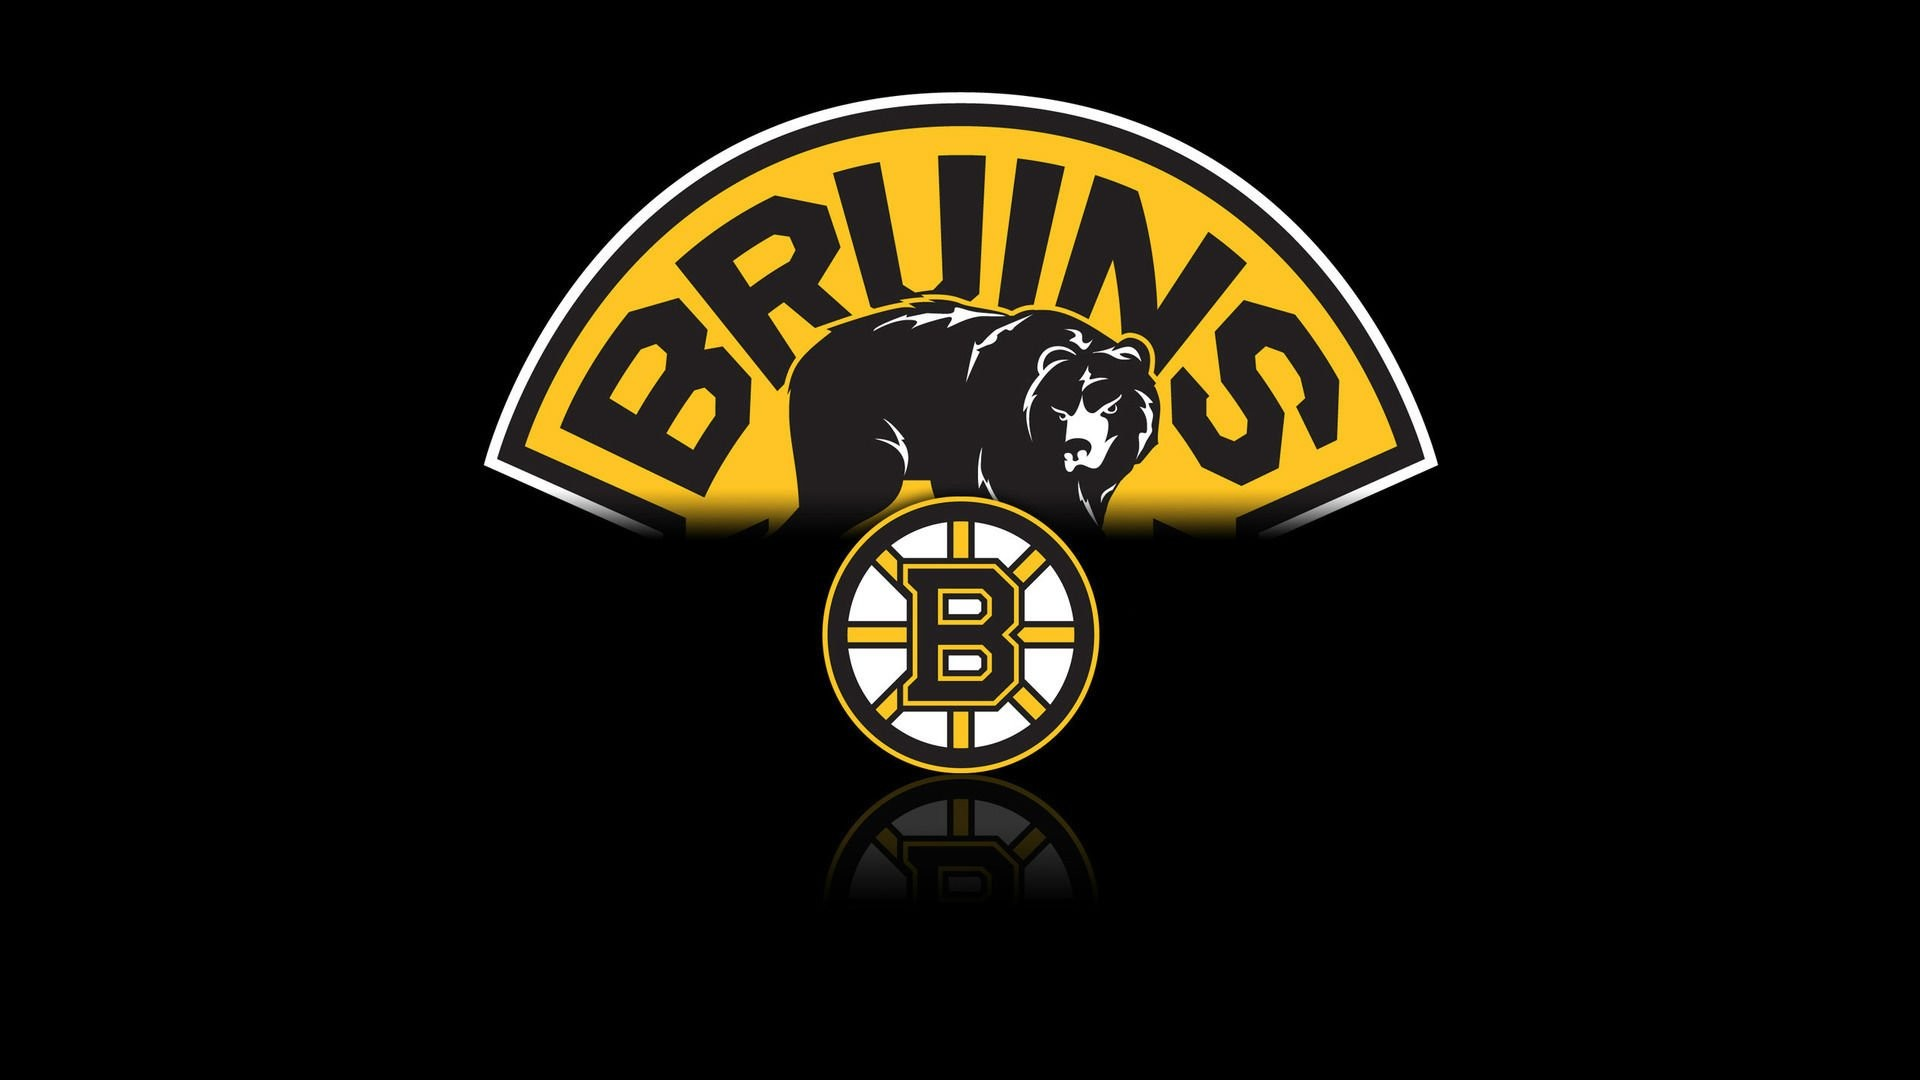 1920x1080 BOSTON BRUINS nhl hockey (40) wallpaper |  | 336555 | WallpaperUP